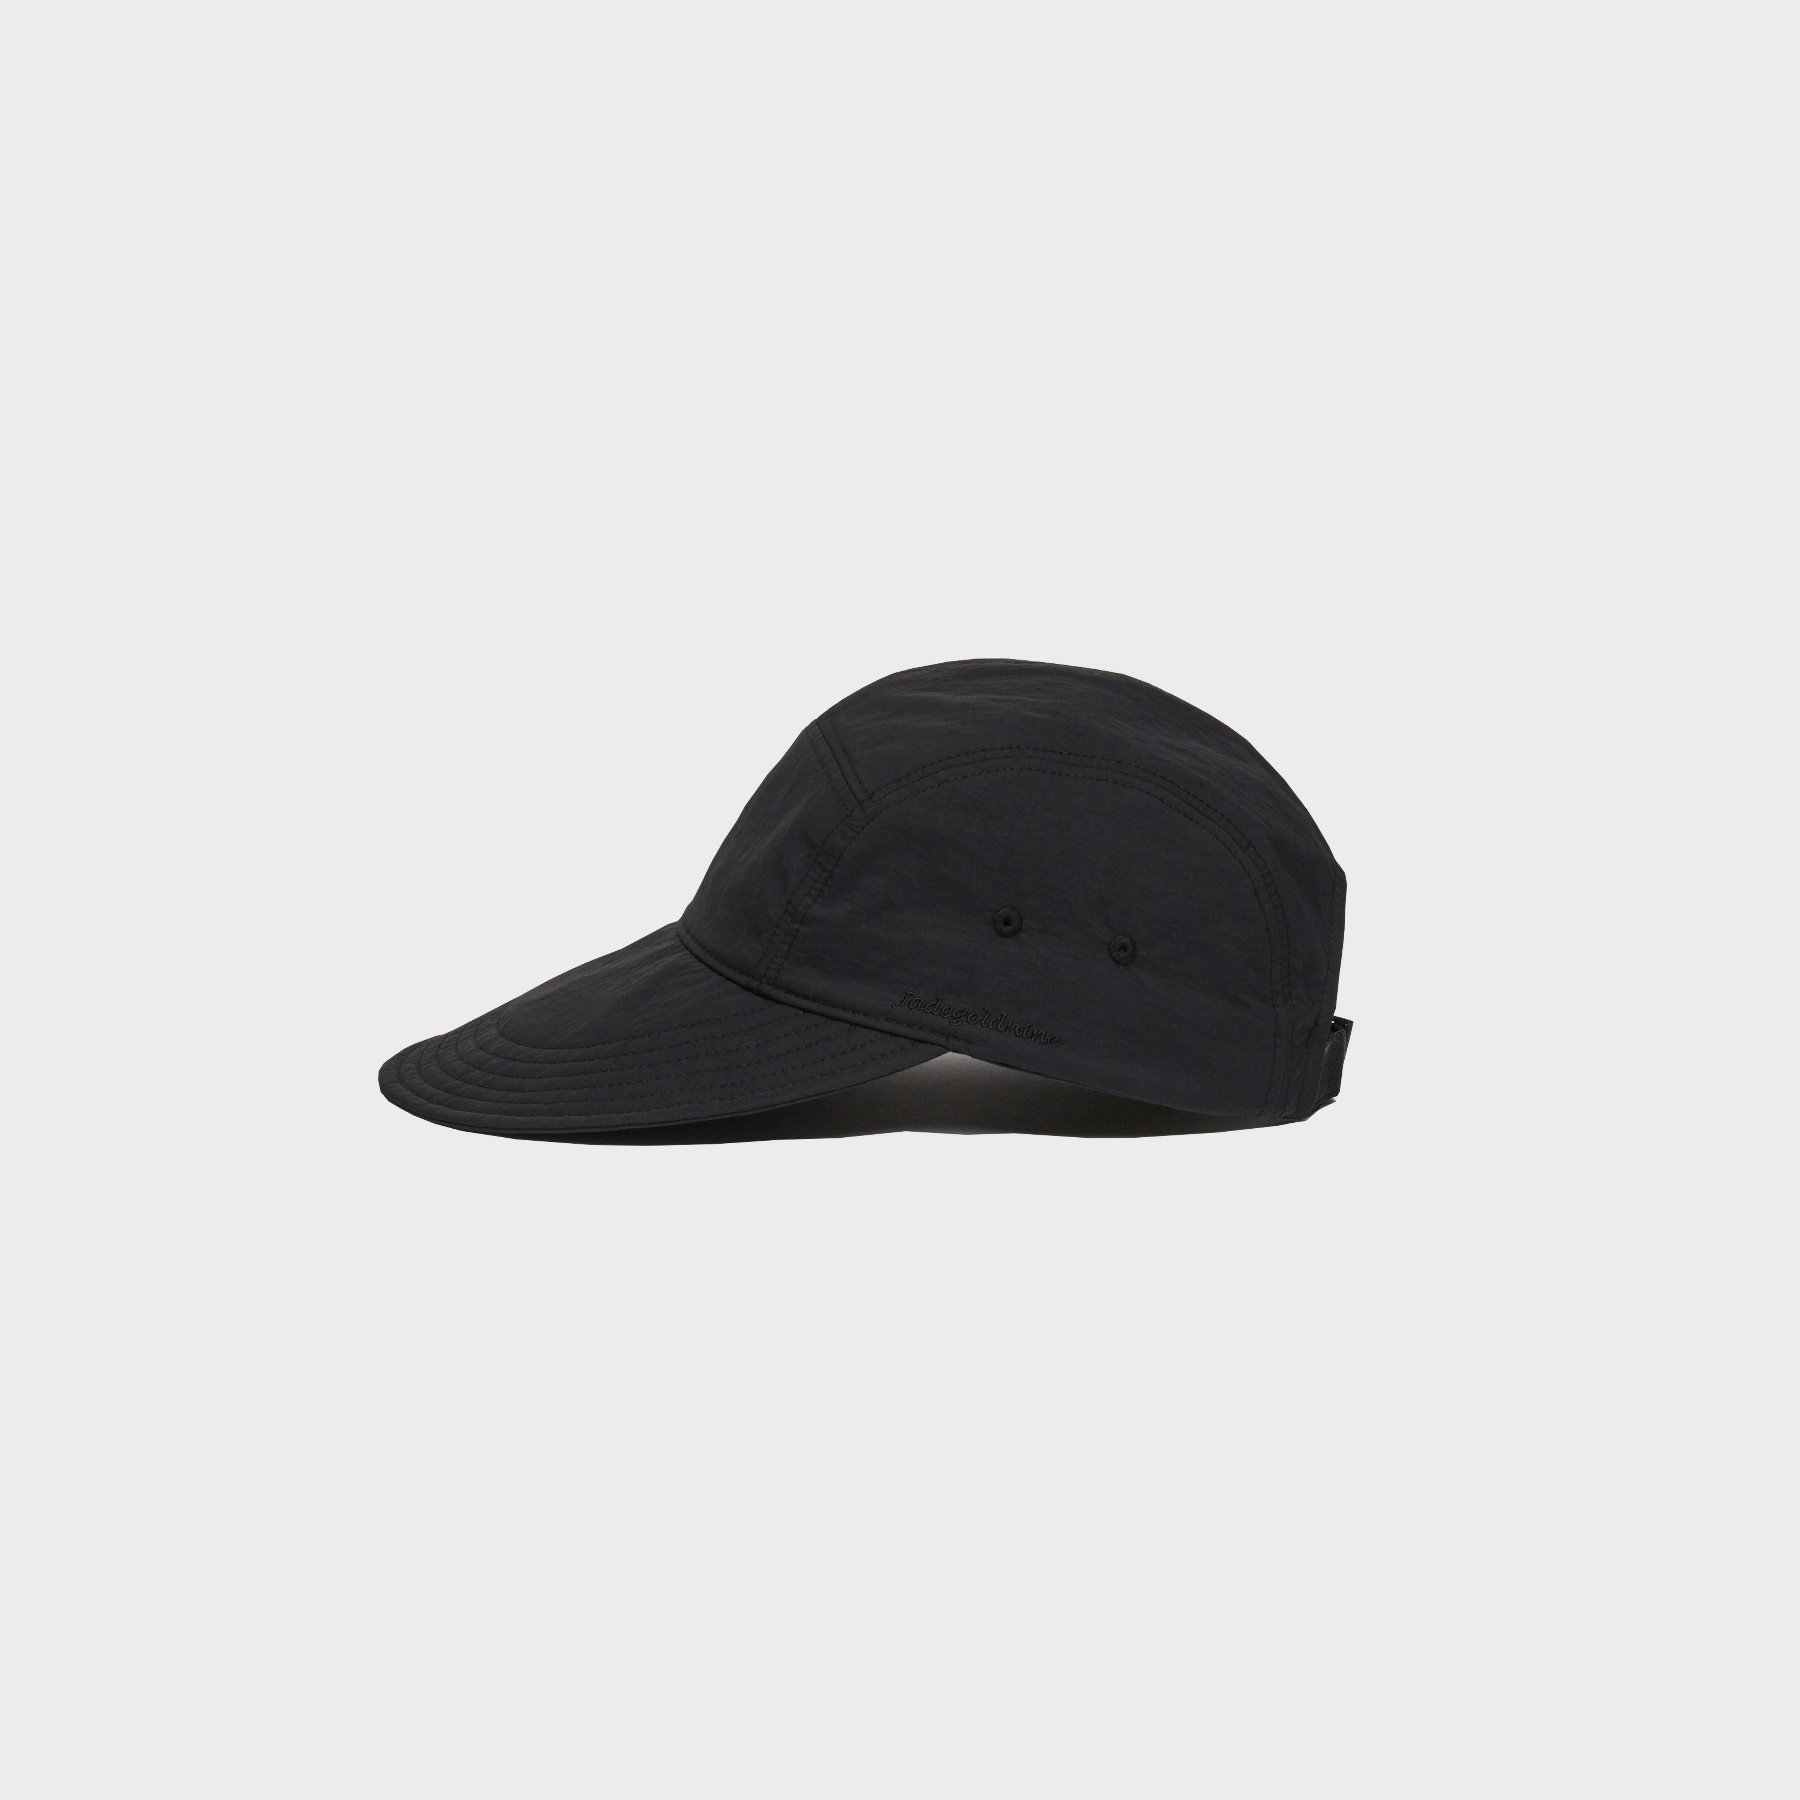 Summer campcap (black)